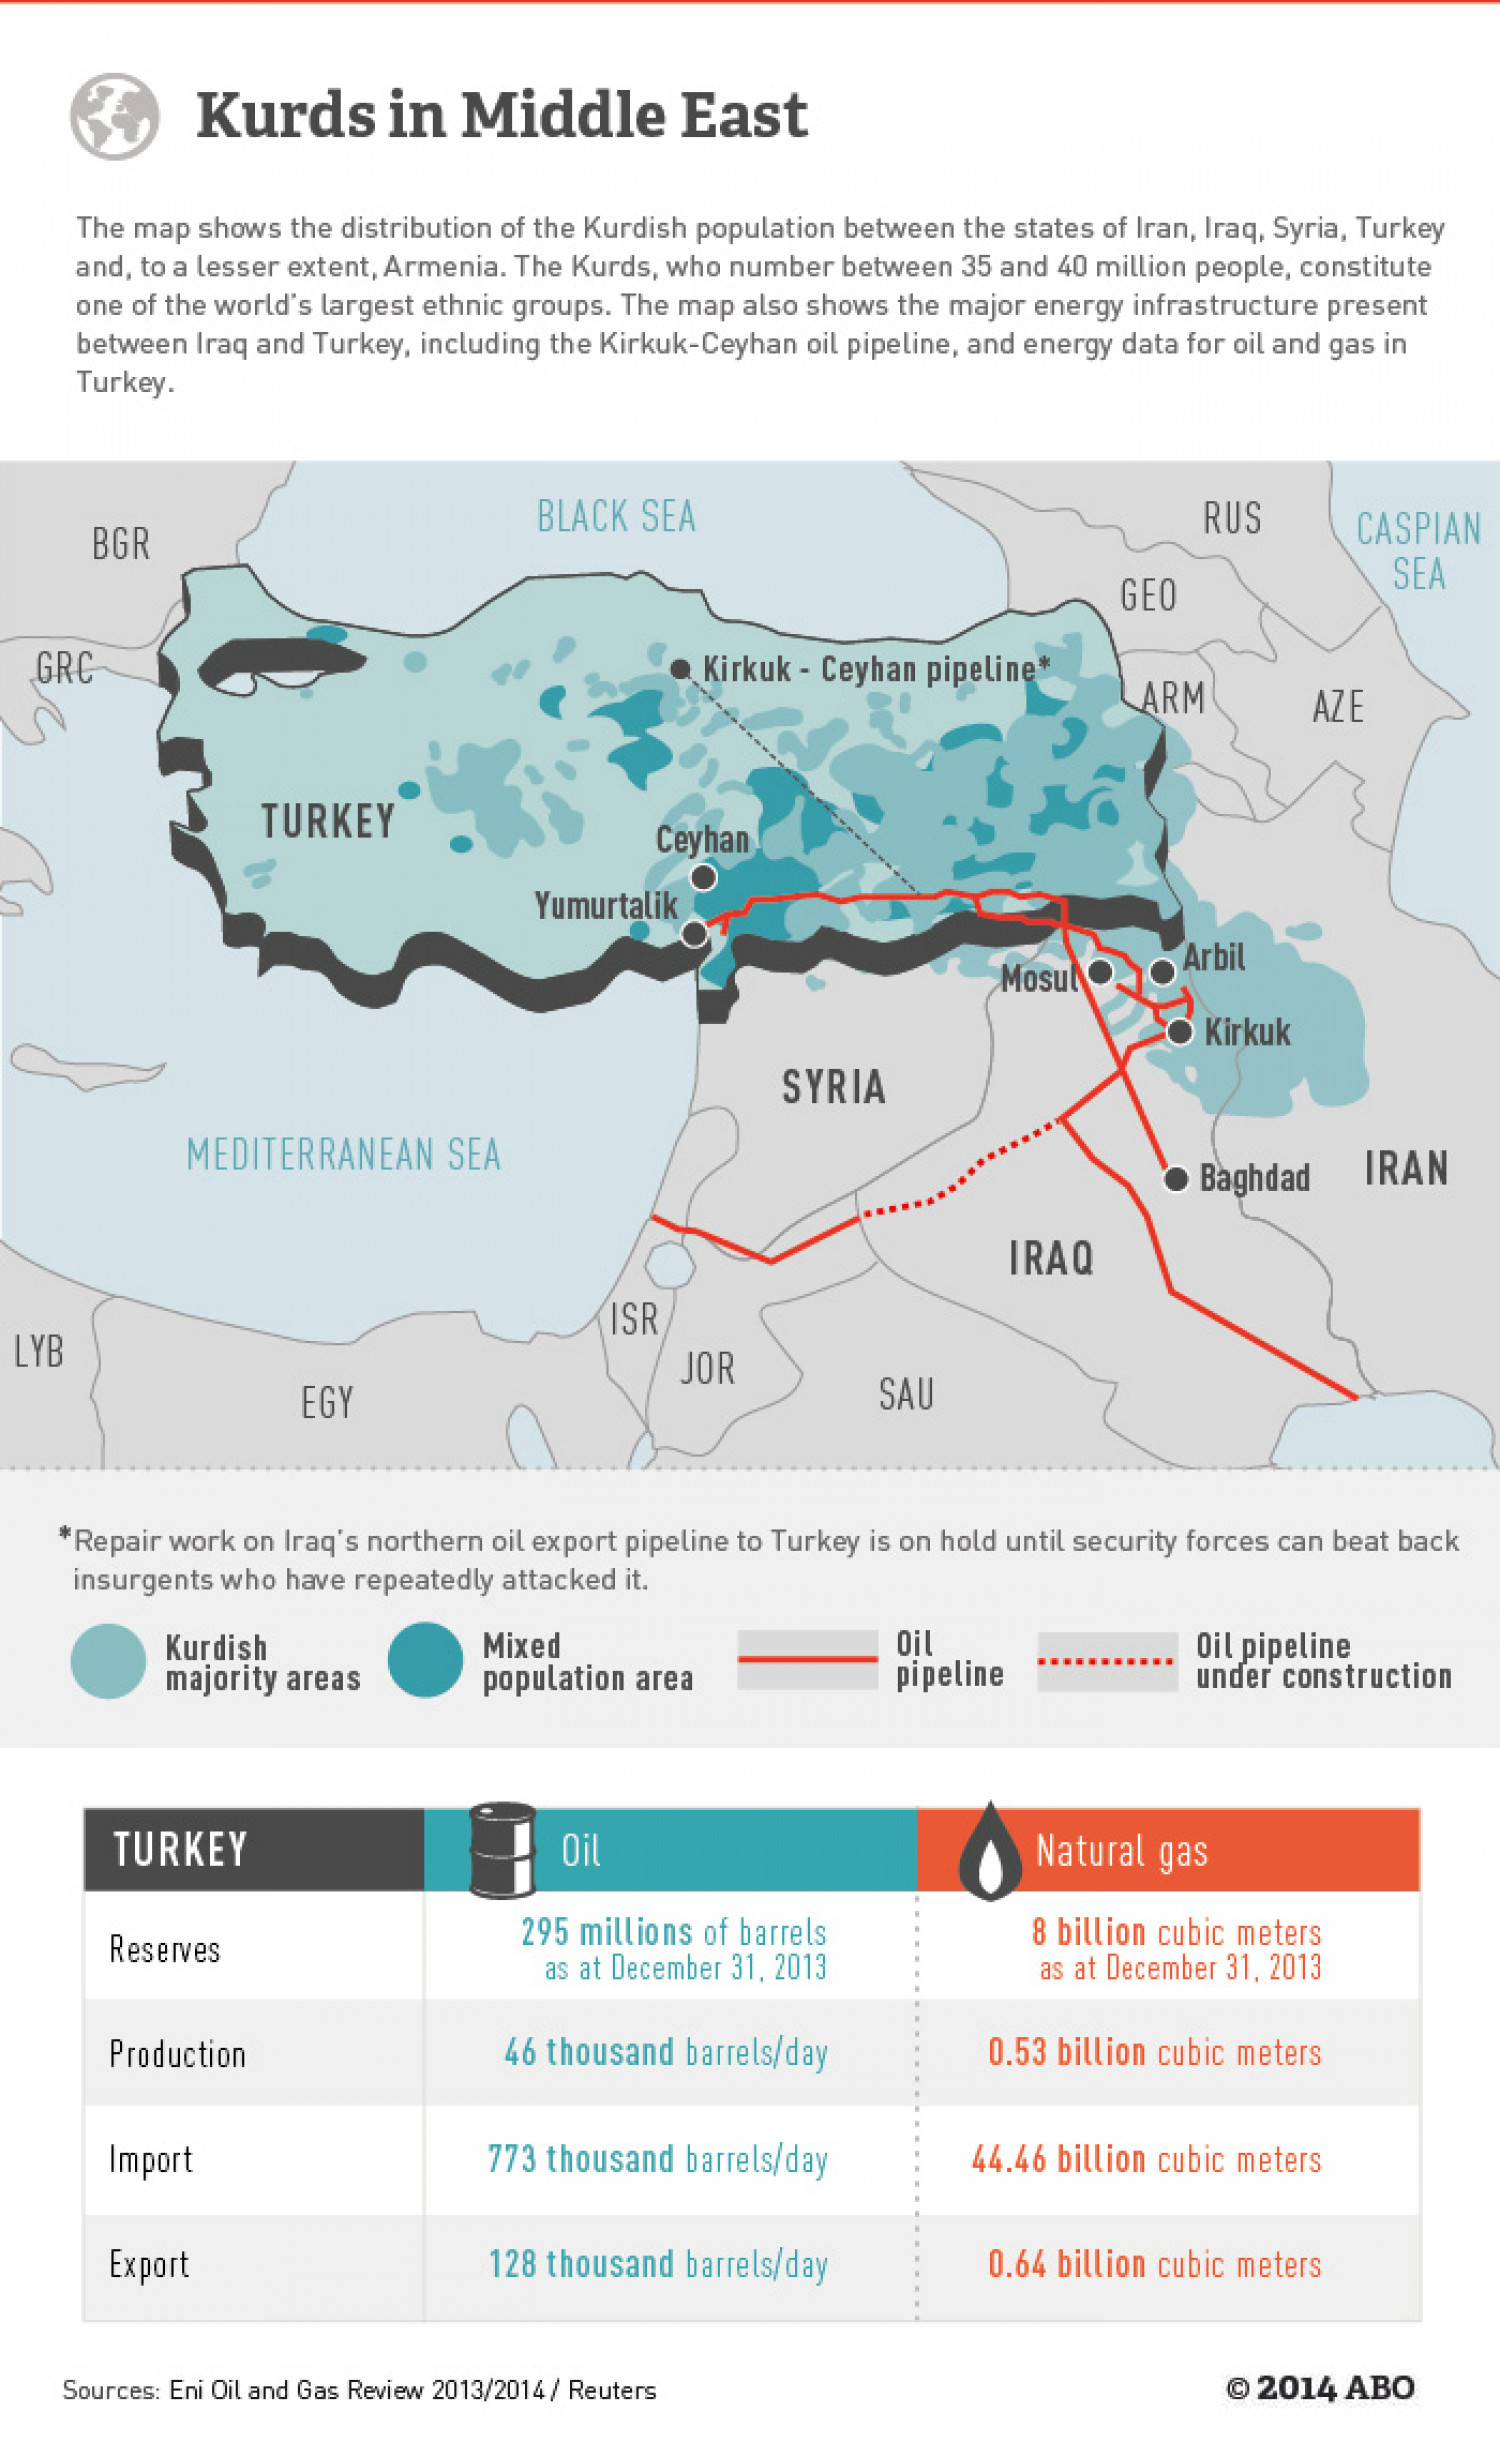 Kurds in Middle East Infographic